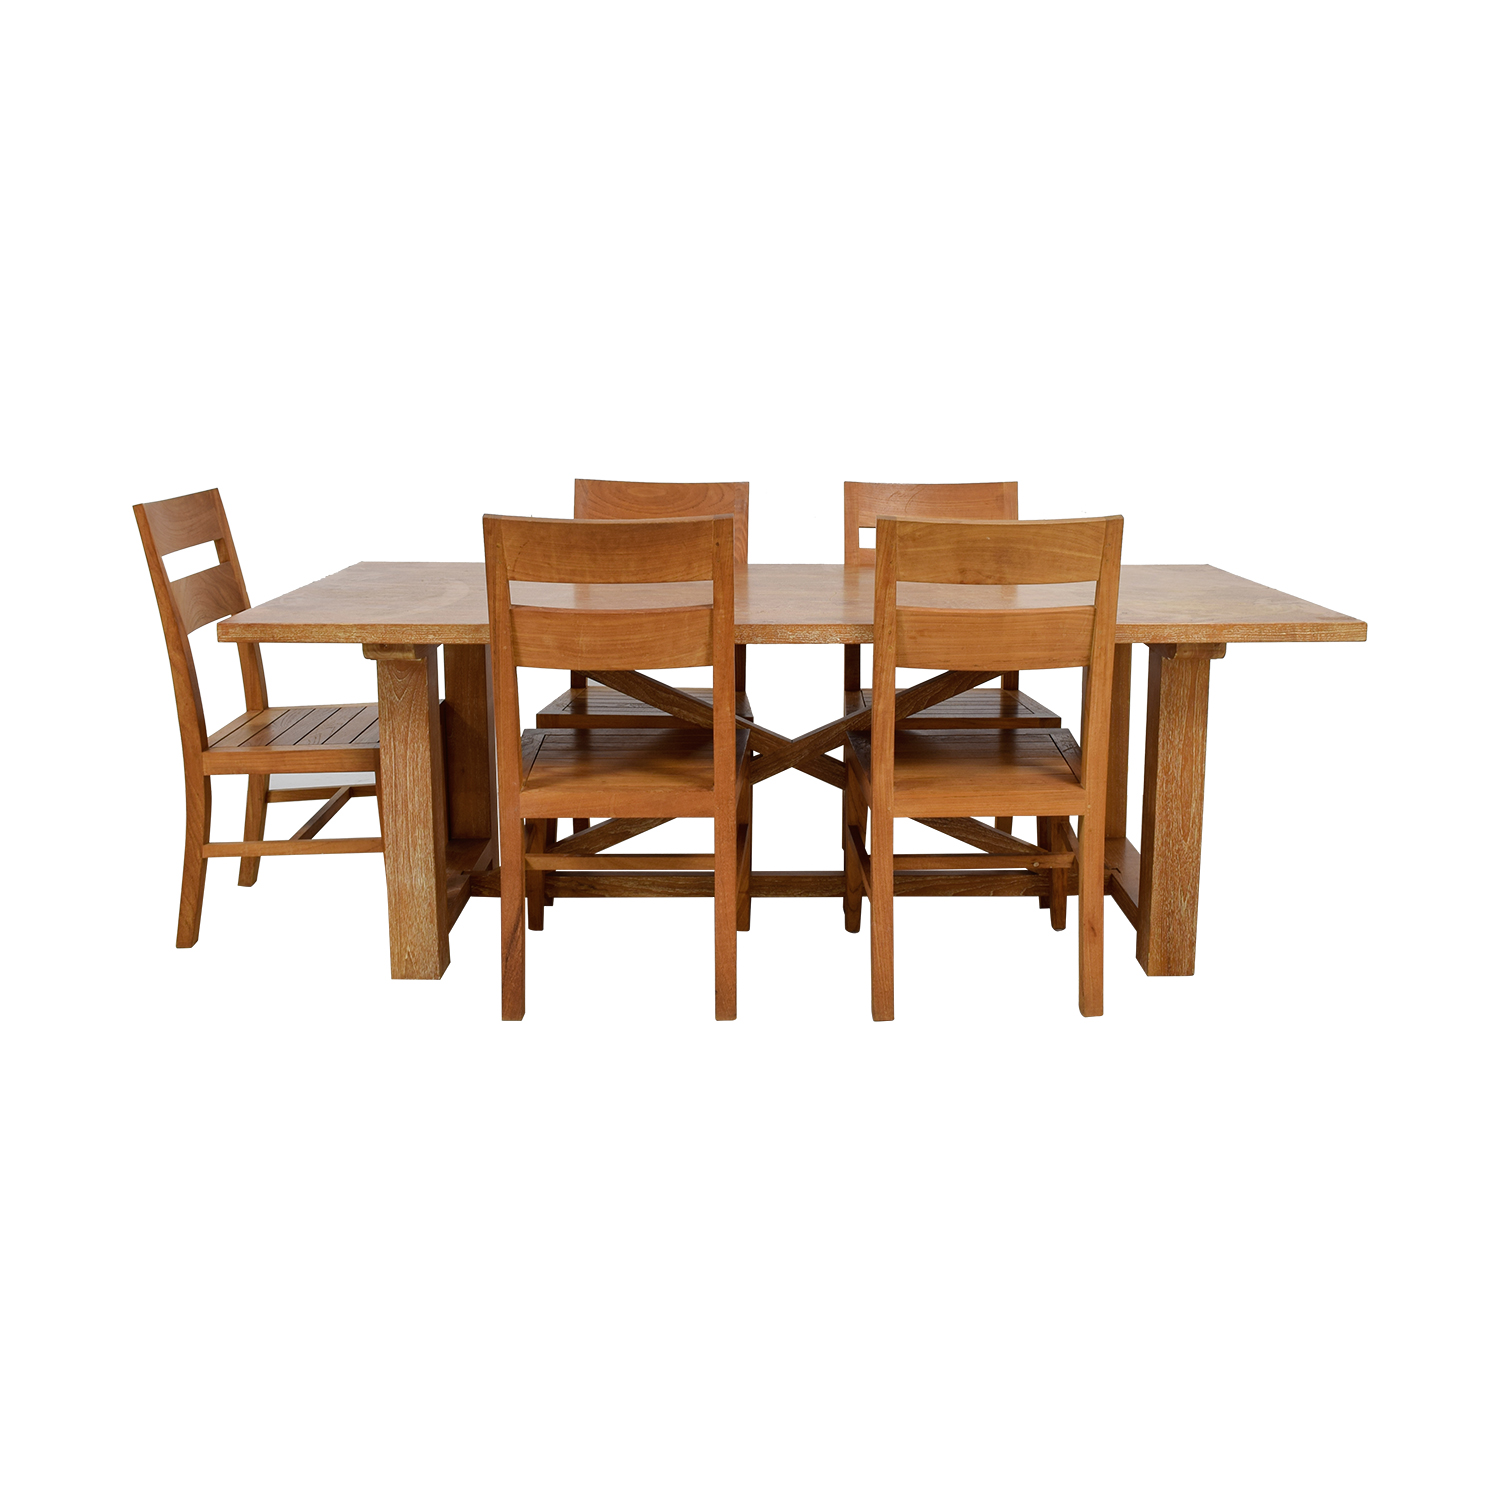 Crate & Barrel Teak Wood Dining Set / Sofas